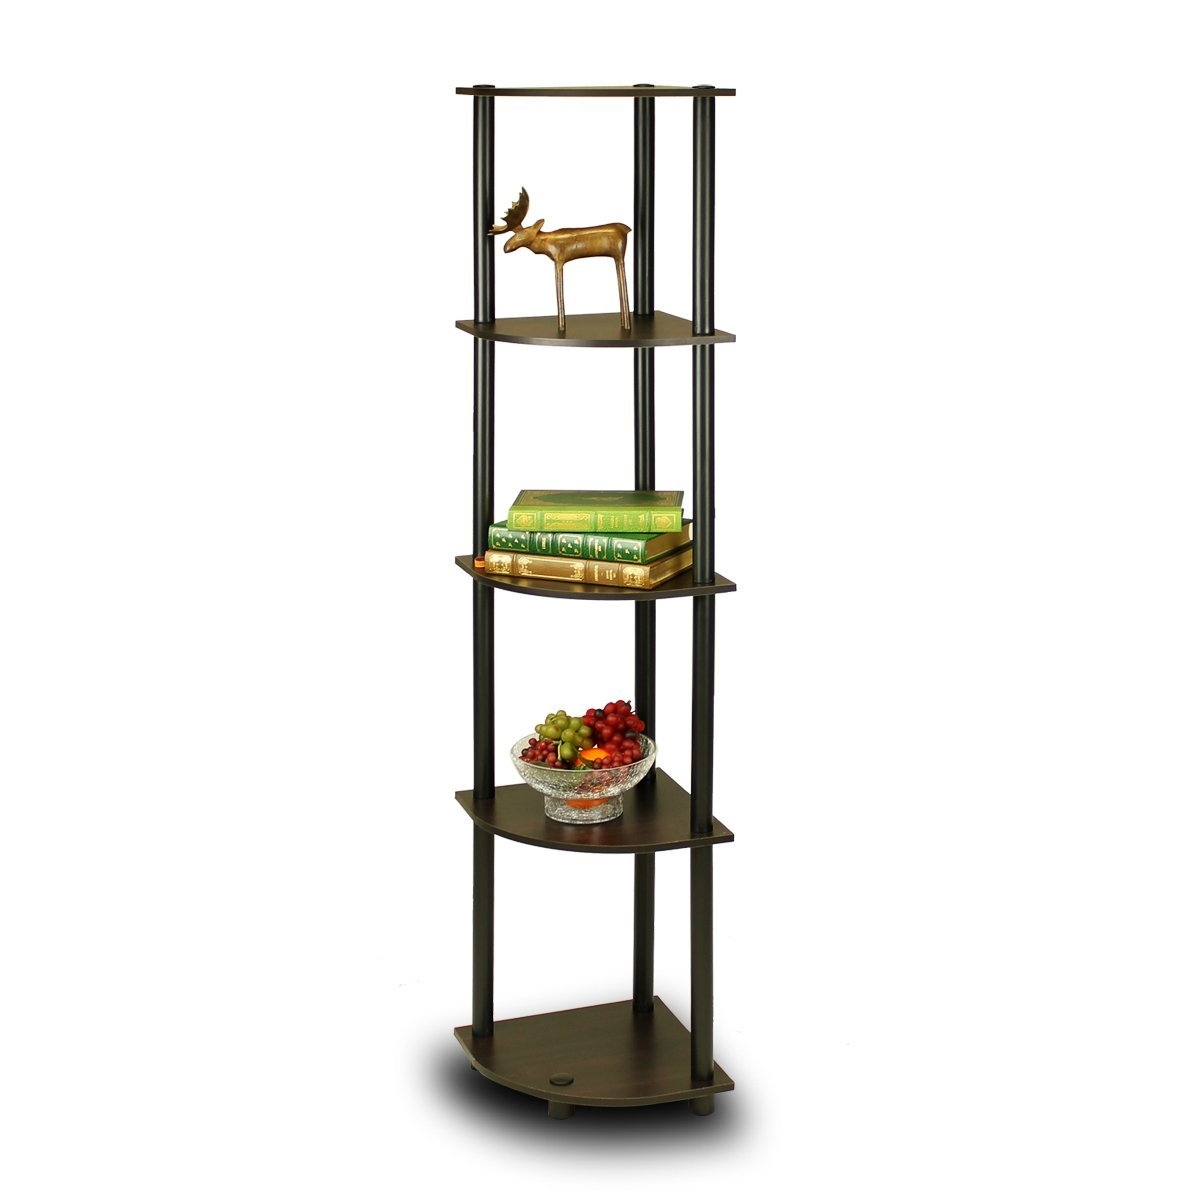 This 5-Tier Corner Display Shelf Bookcase in Espresso & Black is designed to meet the demand of low cost but durable and efficient furniture. It is proven to be the most popular furniture due to its functionality, price, and the no hassle assembly. The materials comply with e1 grade particle board for furniture. There is no foul smell of chemicals, durable and it is the most stable particleboard used to make furniture. Care instructions: wipe clean with clean damped cloth. Avoid using harsh chemicals. We are pleased to send you the replacement part free of charge. Pictures are for illustration purpose. All decor items are not included in this offer. Pictures are for illustration purpose. All decor items are not included in this offer.